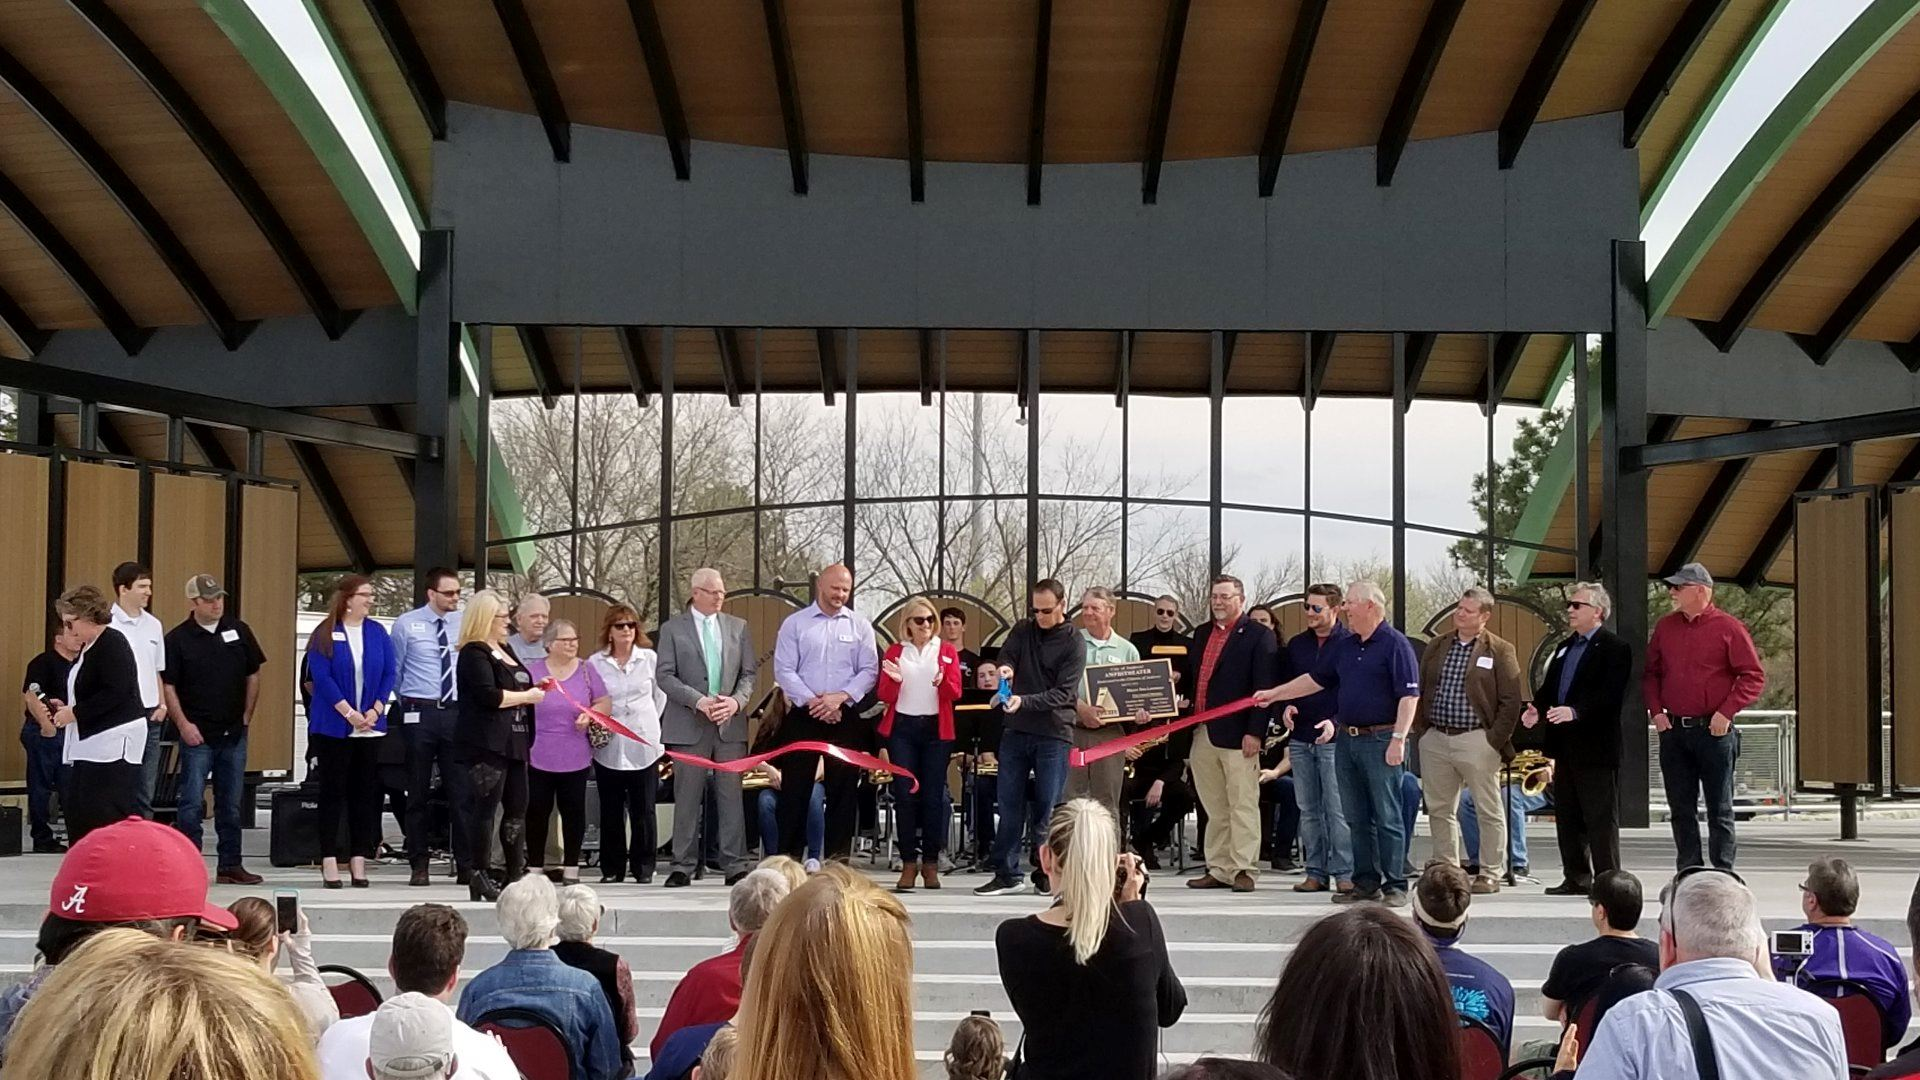 CapFed Amphitheater Ribbon Cutting